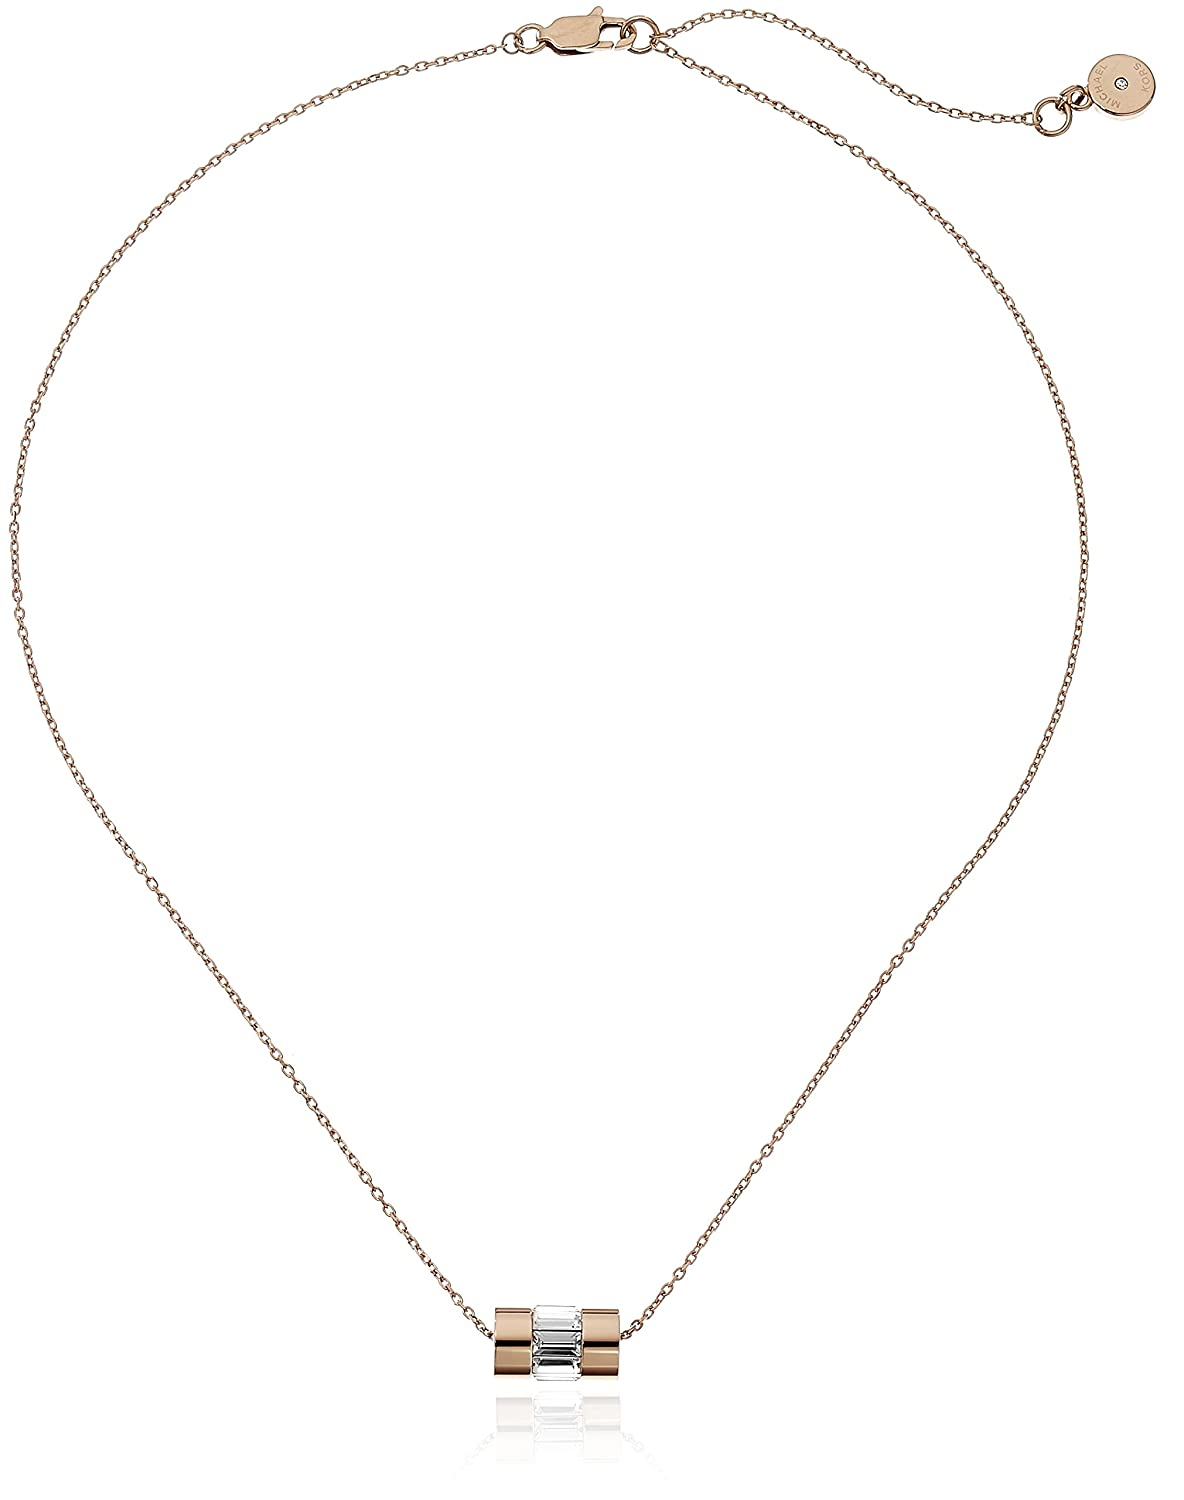 amazon com michael kors park avenue rose gold tone necklace jewelry